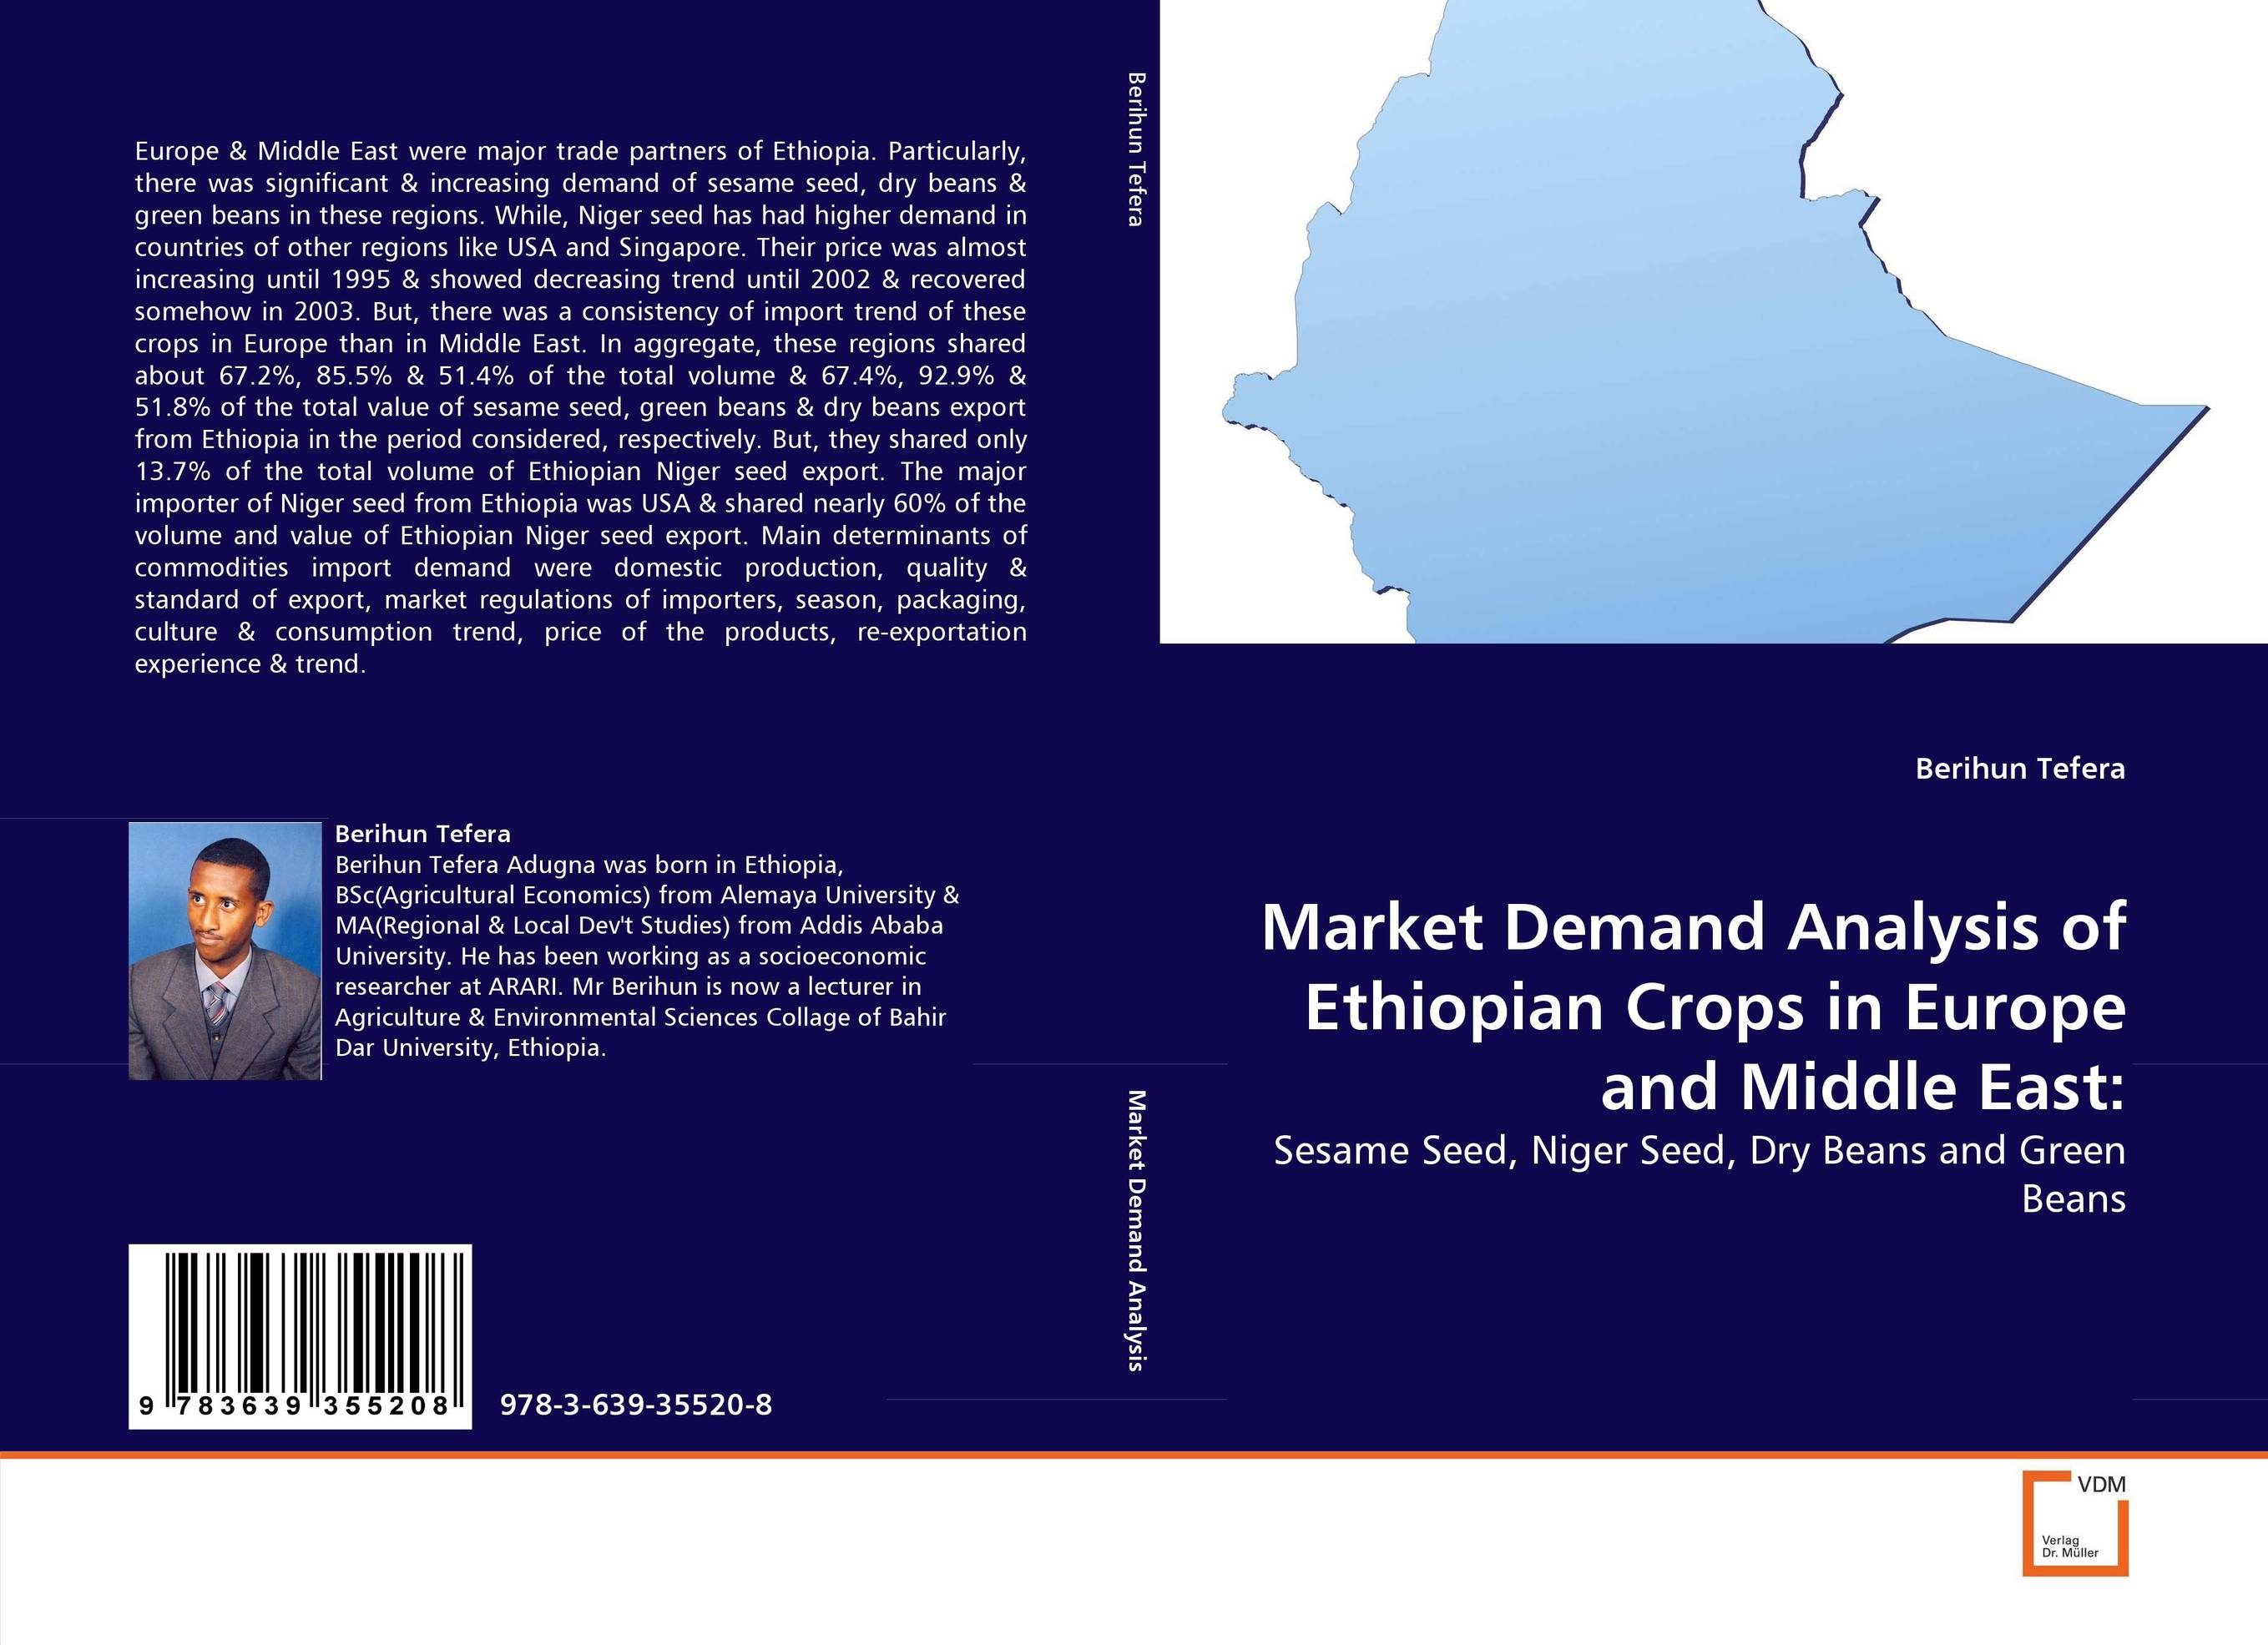 Фото Market Demand Analysis of Ethiopian Crops in Europe and Middle East: cervical cancer in amhara region in ethiopia